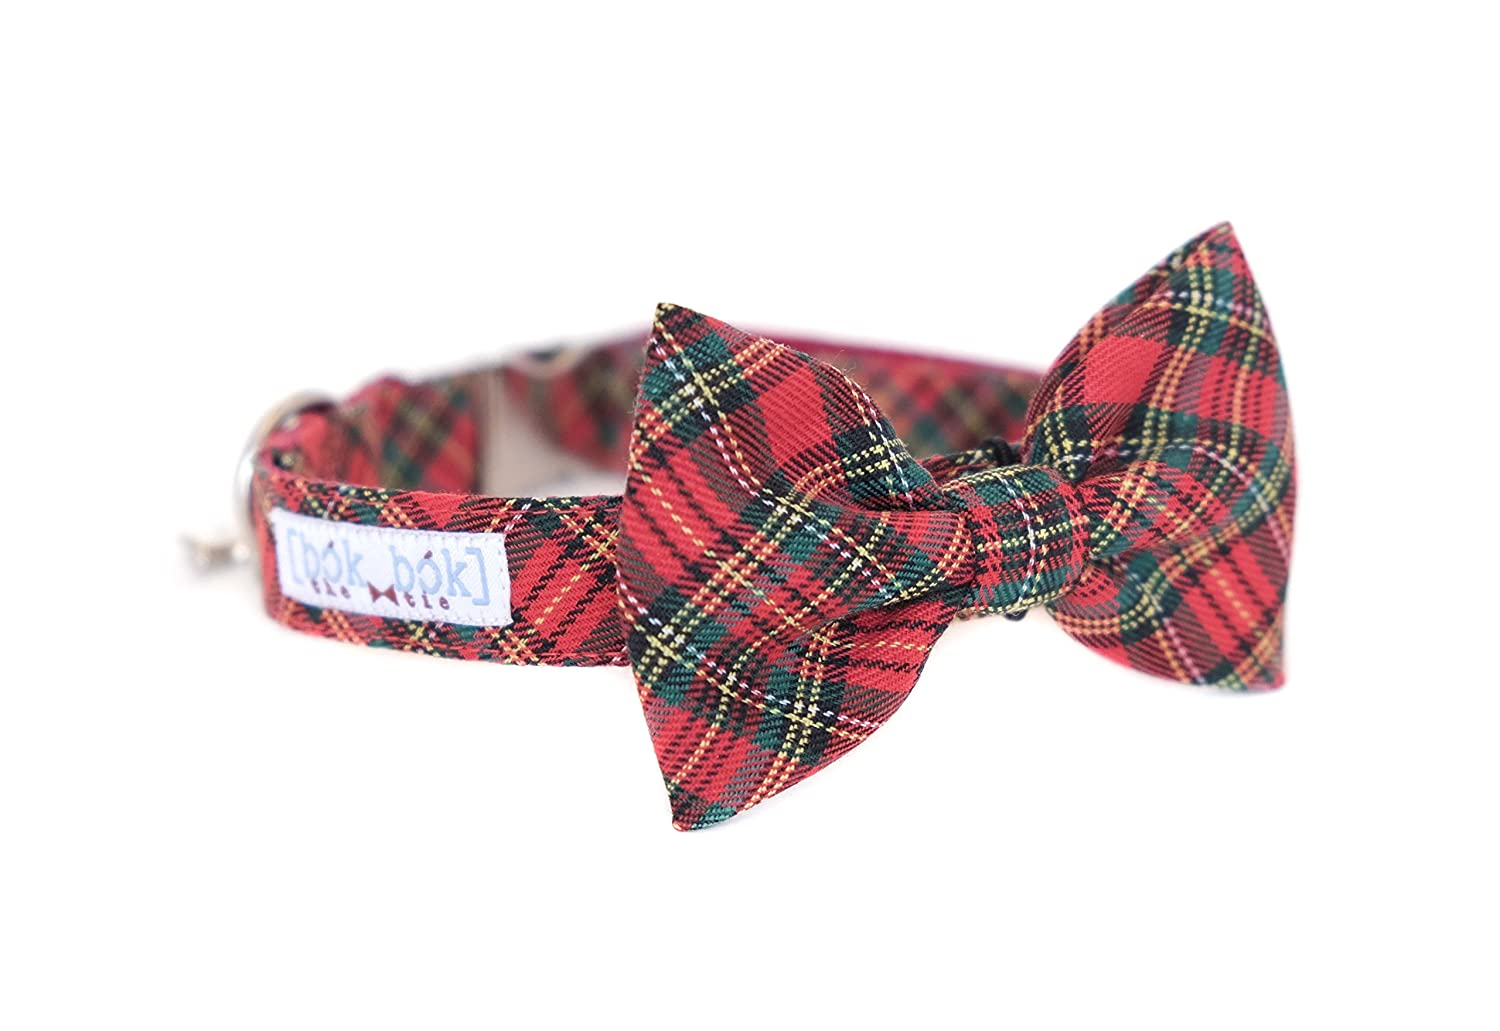 Red & Green Tartan - Hand Stitching Dog Cat Pet Bow Tie Bowtie with a Collar Accessory chic